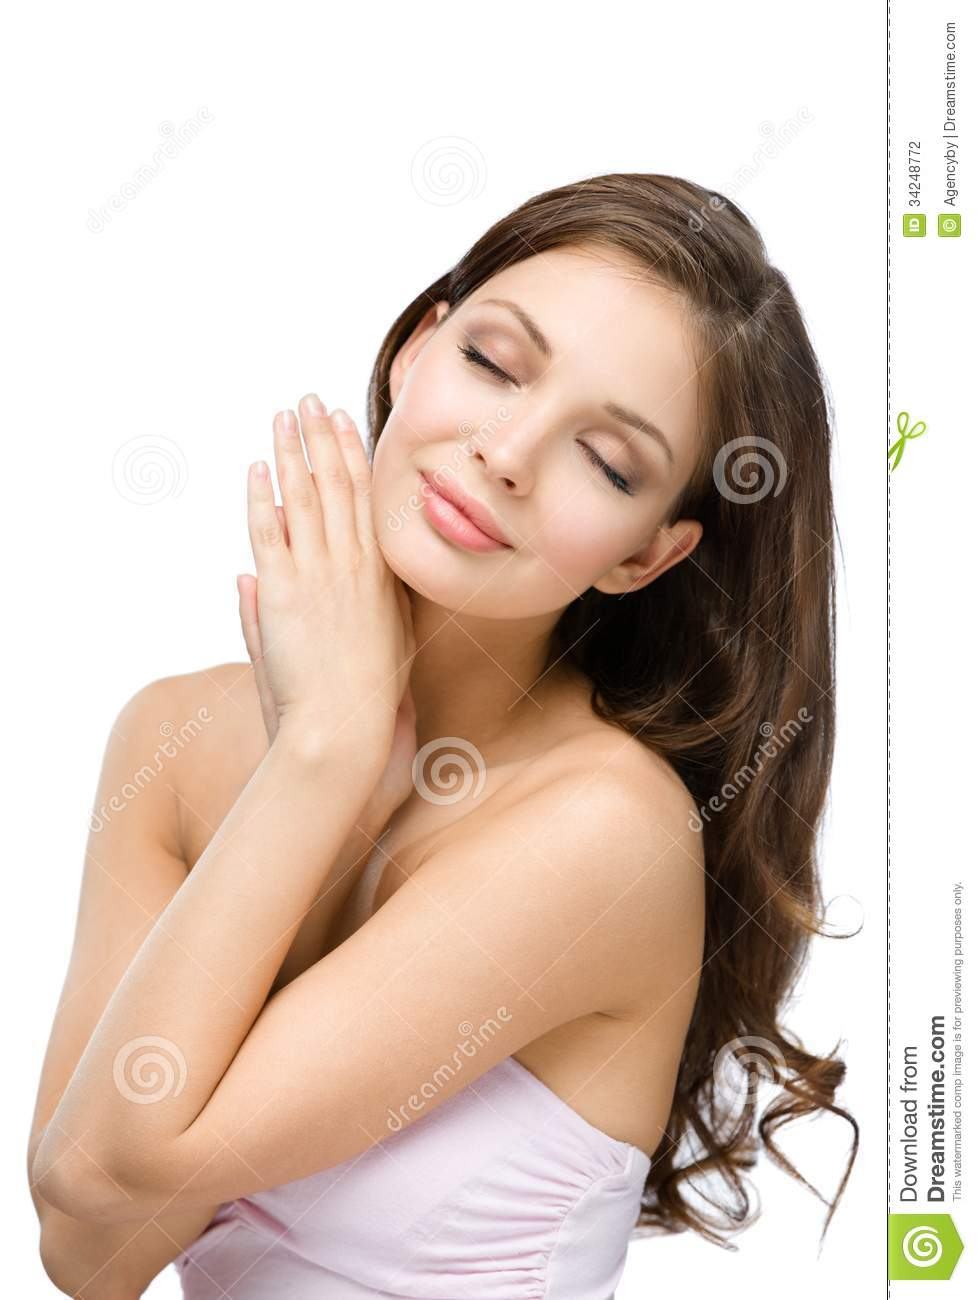 Portrait Of Woman With Eyes Closed Touching Face Stock